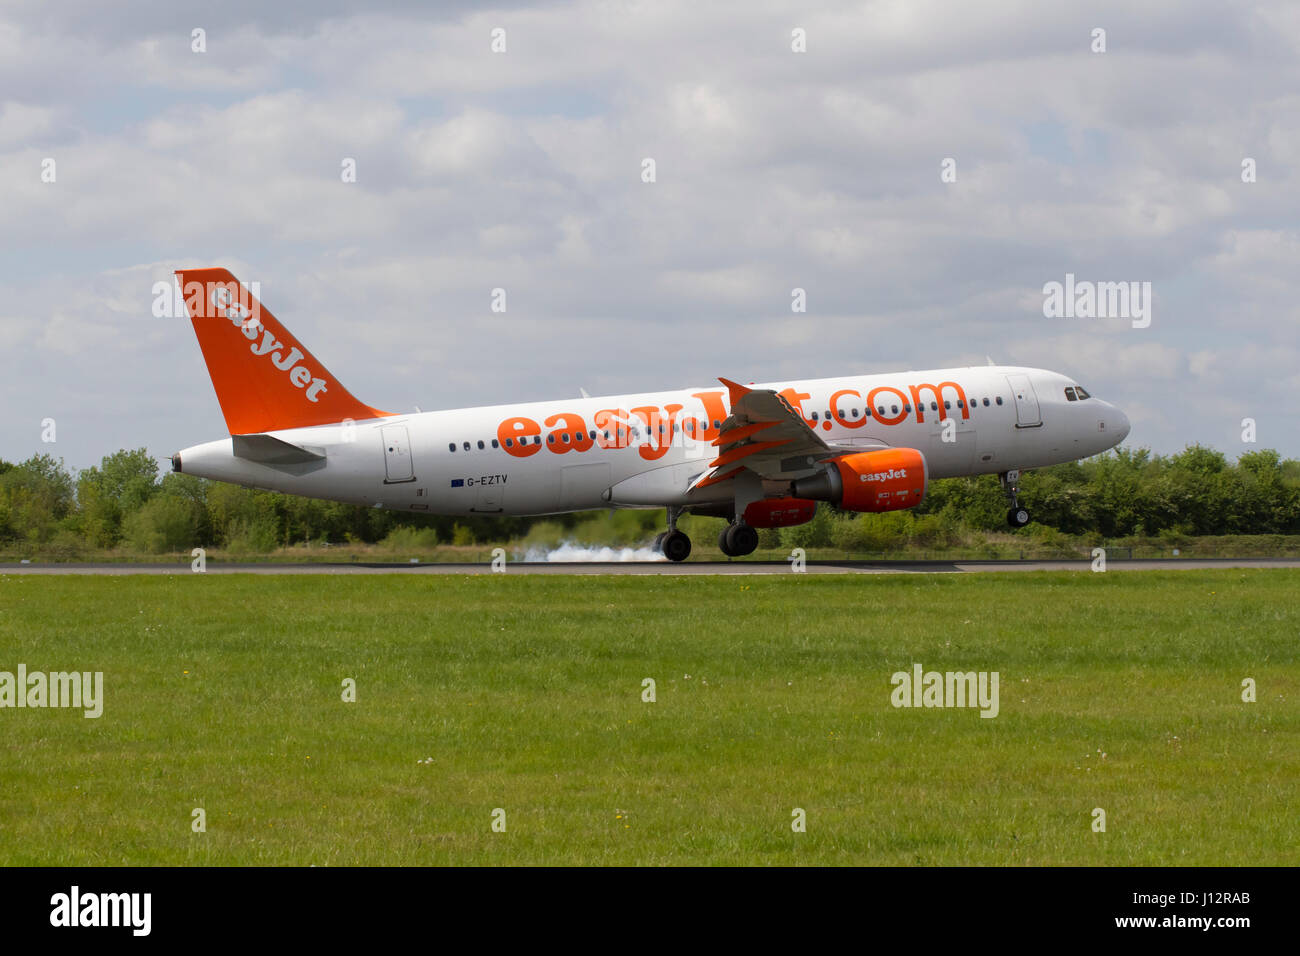 Easyjet Plane G- EZTV Airbus A320-214 landing at Manchester Airport - Stock Image